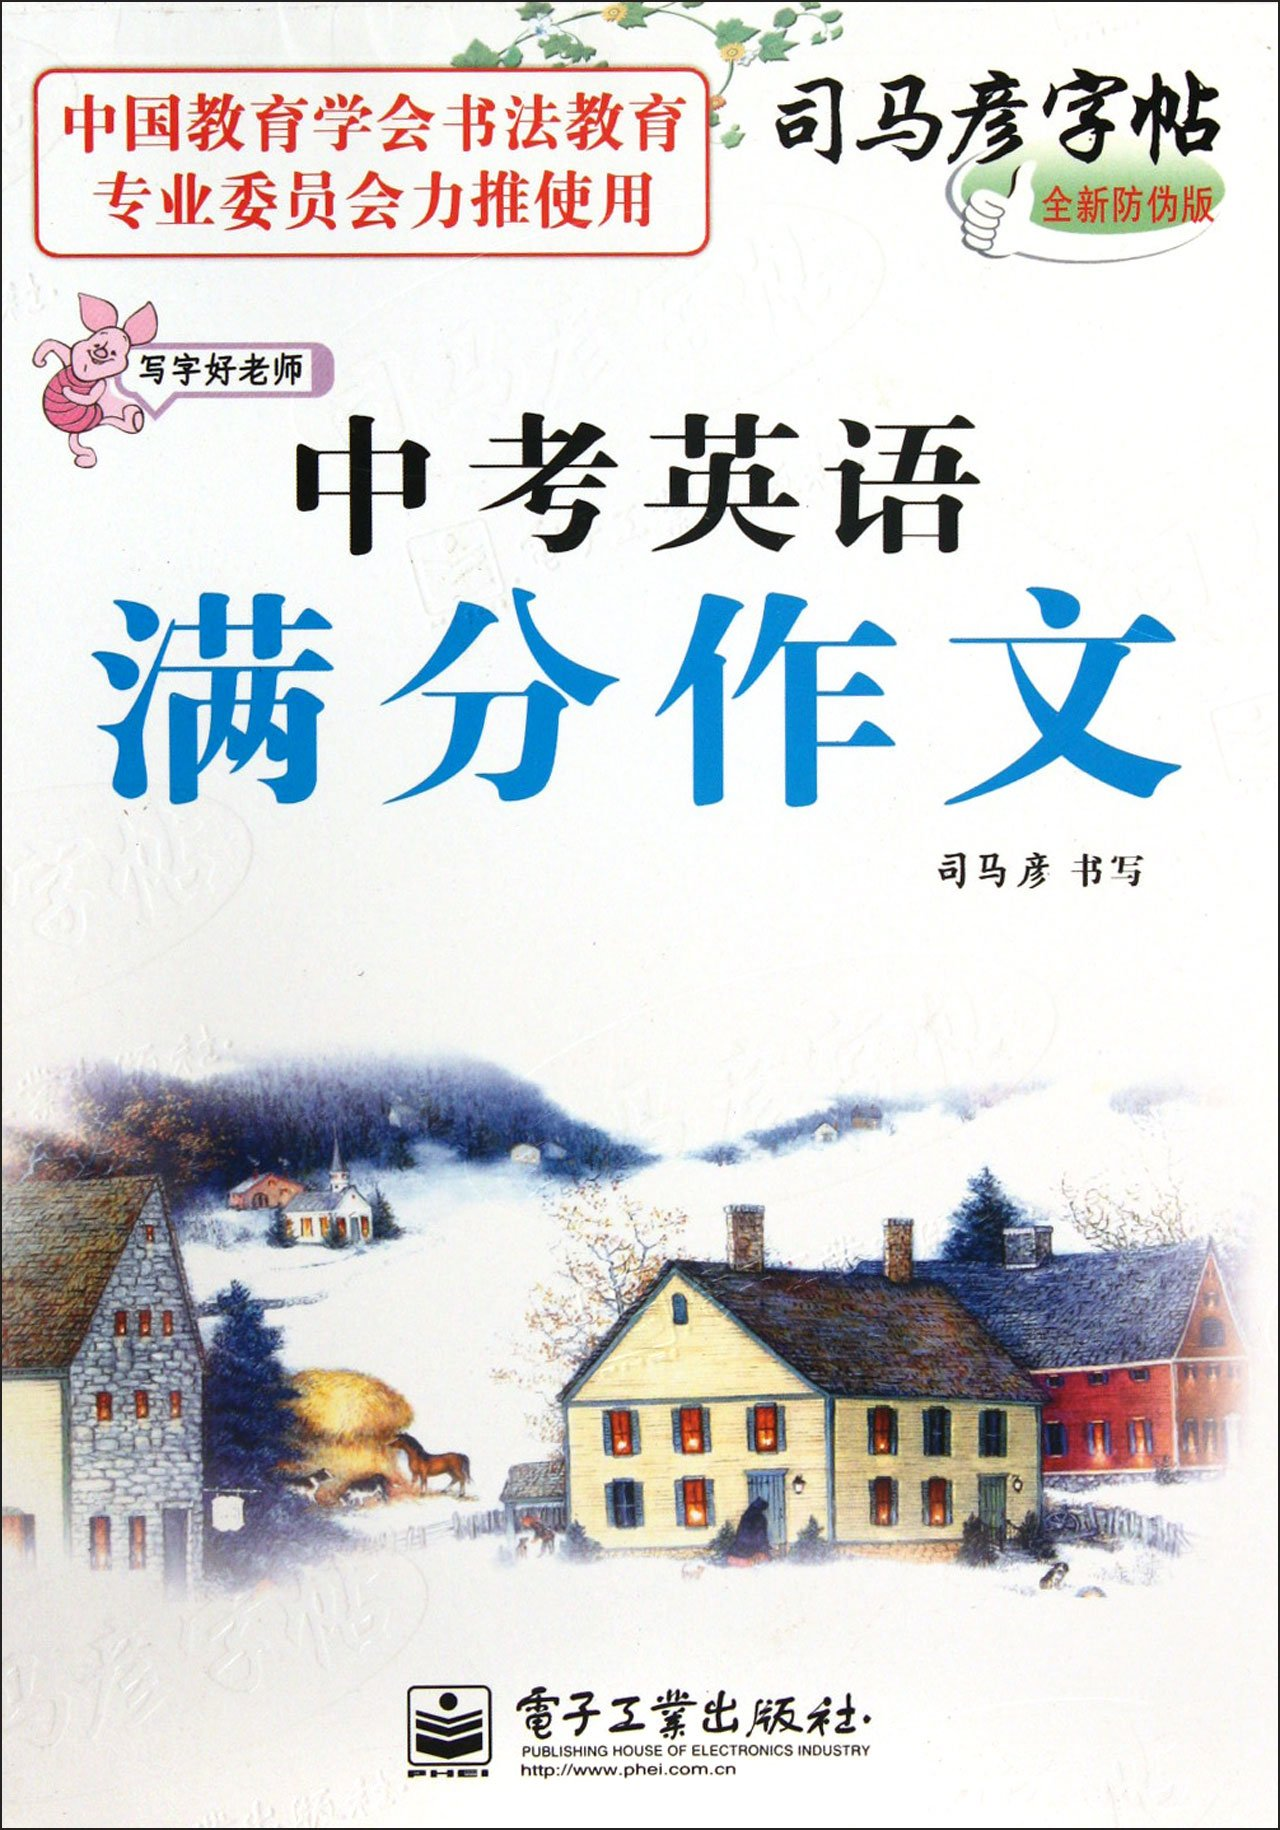 Full-Score English Essays in the Middle School Entrance Examination-Sima Yan Copybook-the New Anti-Counterfeit Version (Chinese Edition) ebook